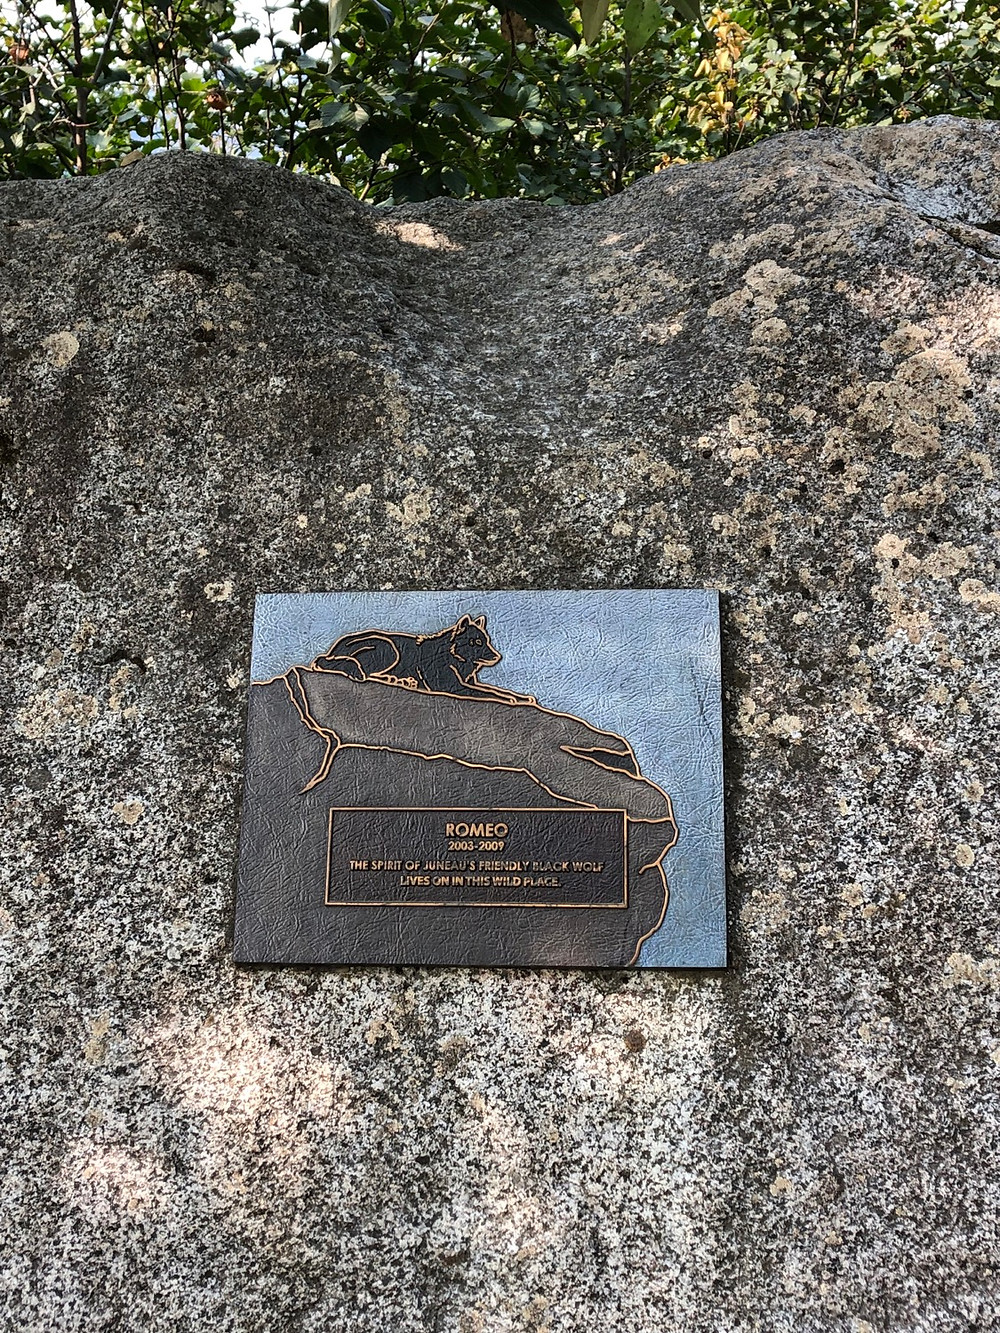 Plaque sign on a rock